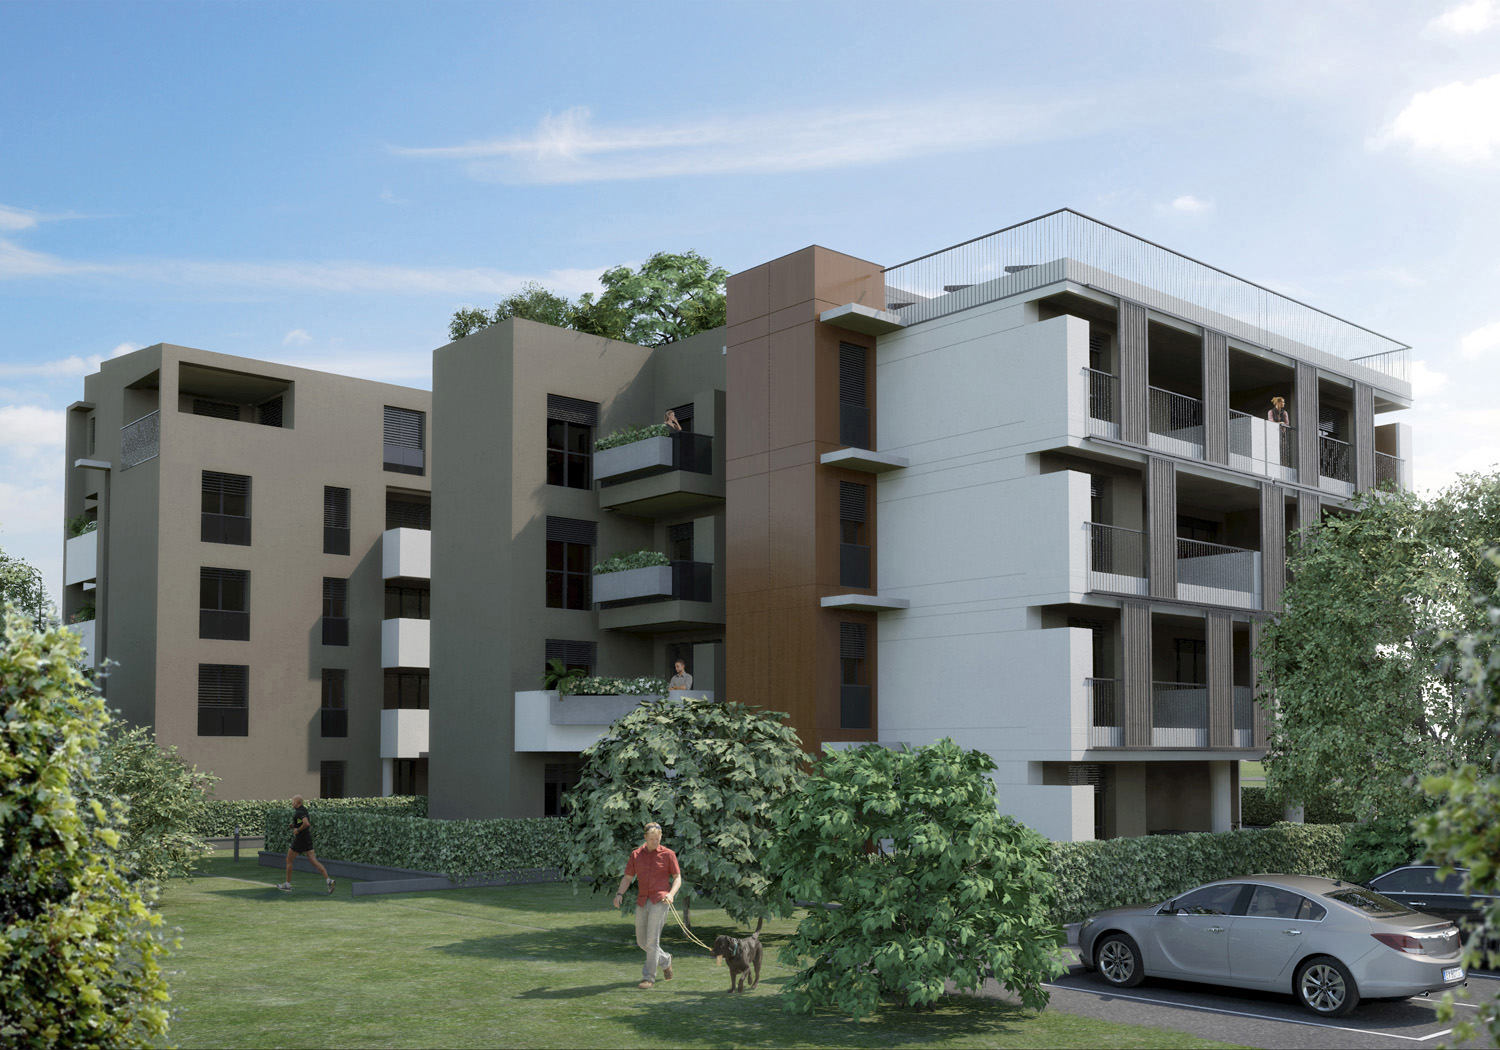 rendering 04 photo © 2018 by GBA Studio srl / Gianluca Brini - Architetto